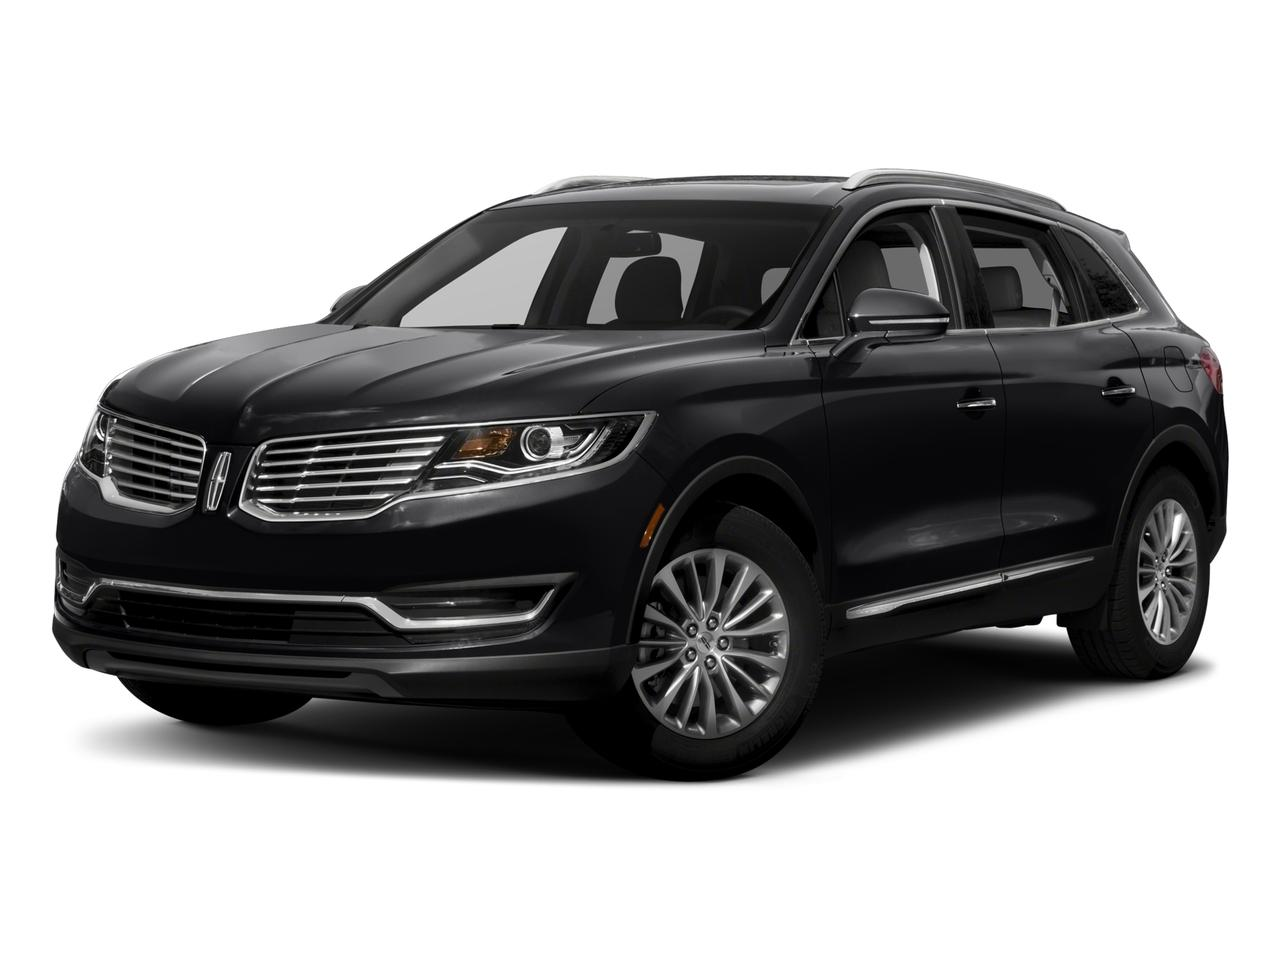 2018 LINCOLN MKX Vehicle Photo in Nashua, NH 03060